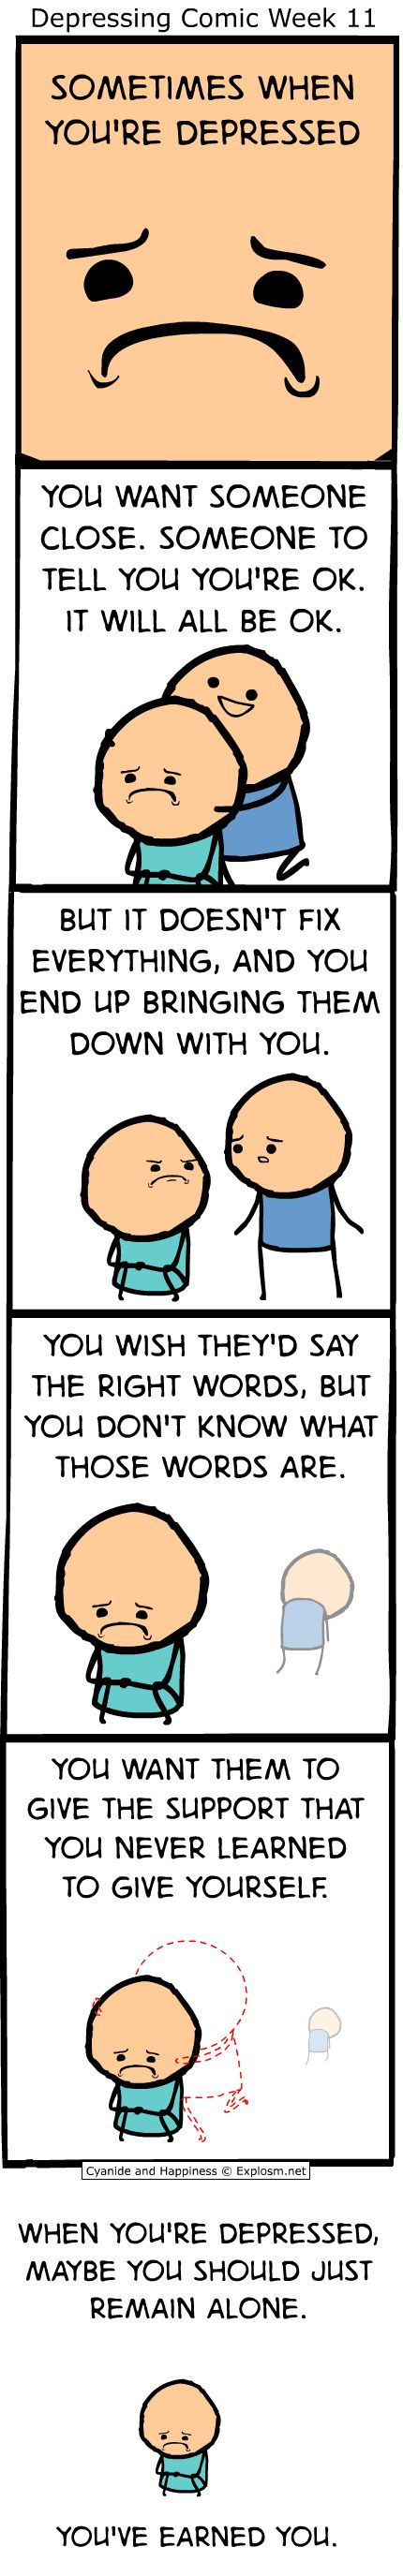 C&H: Sometimes When You're Depressed - Imgur